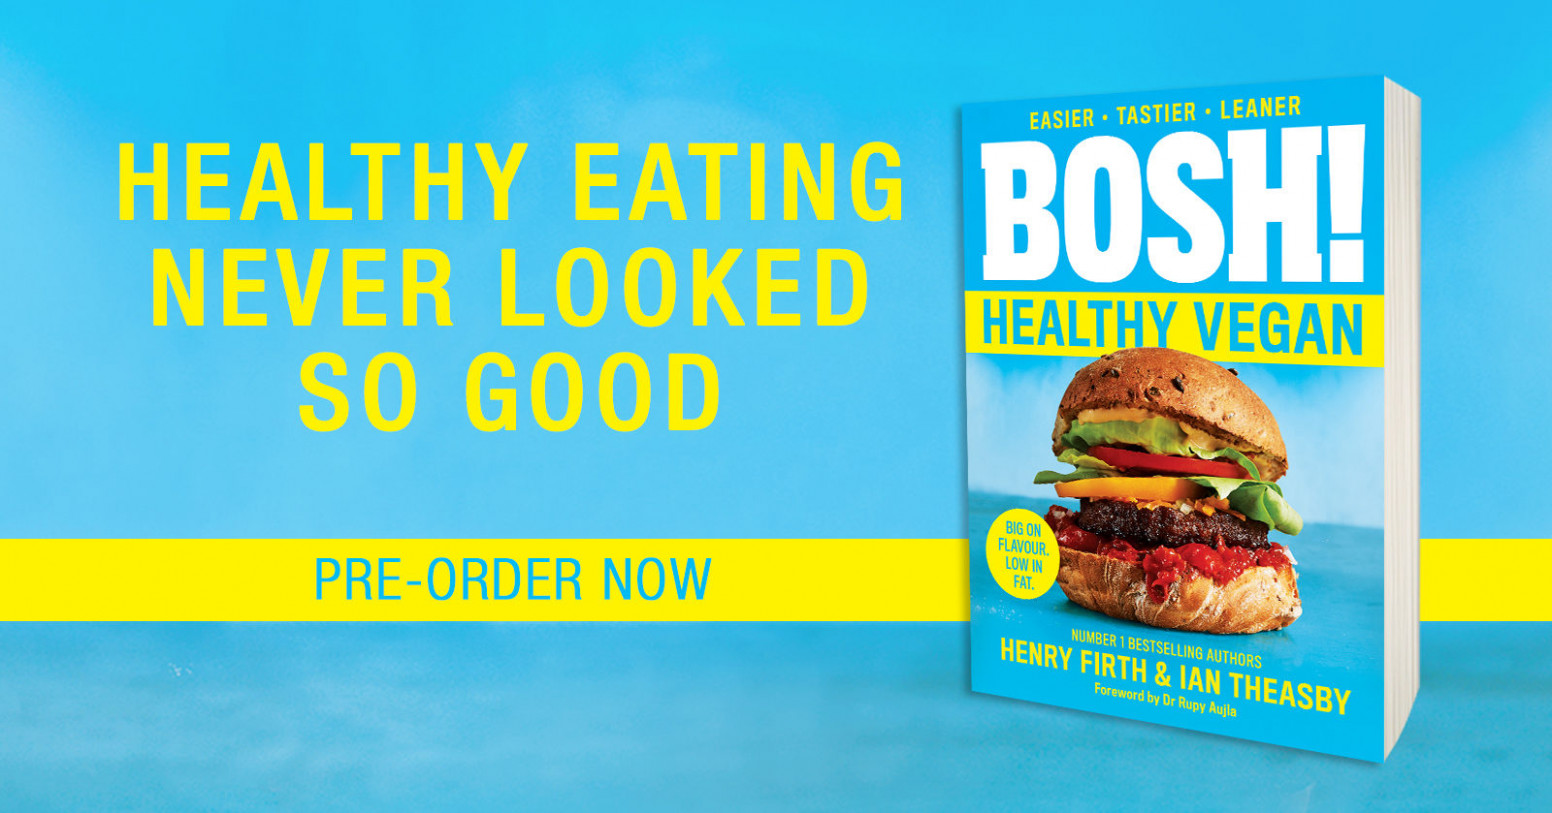 BOSH! NEW BOOK - HEALTHY VEGAN - BOSH! - healthy recipes south africa